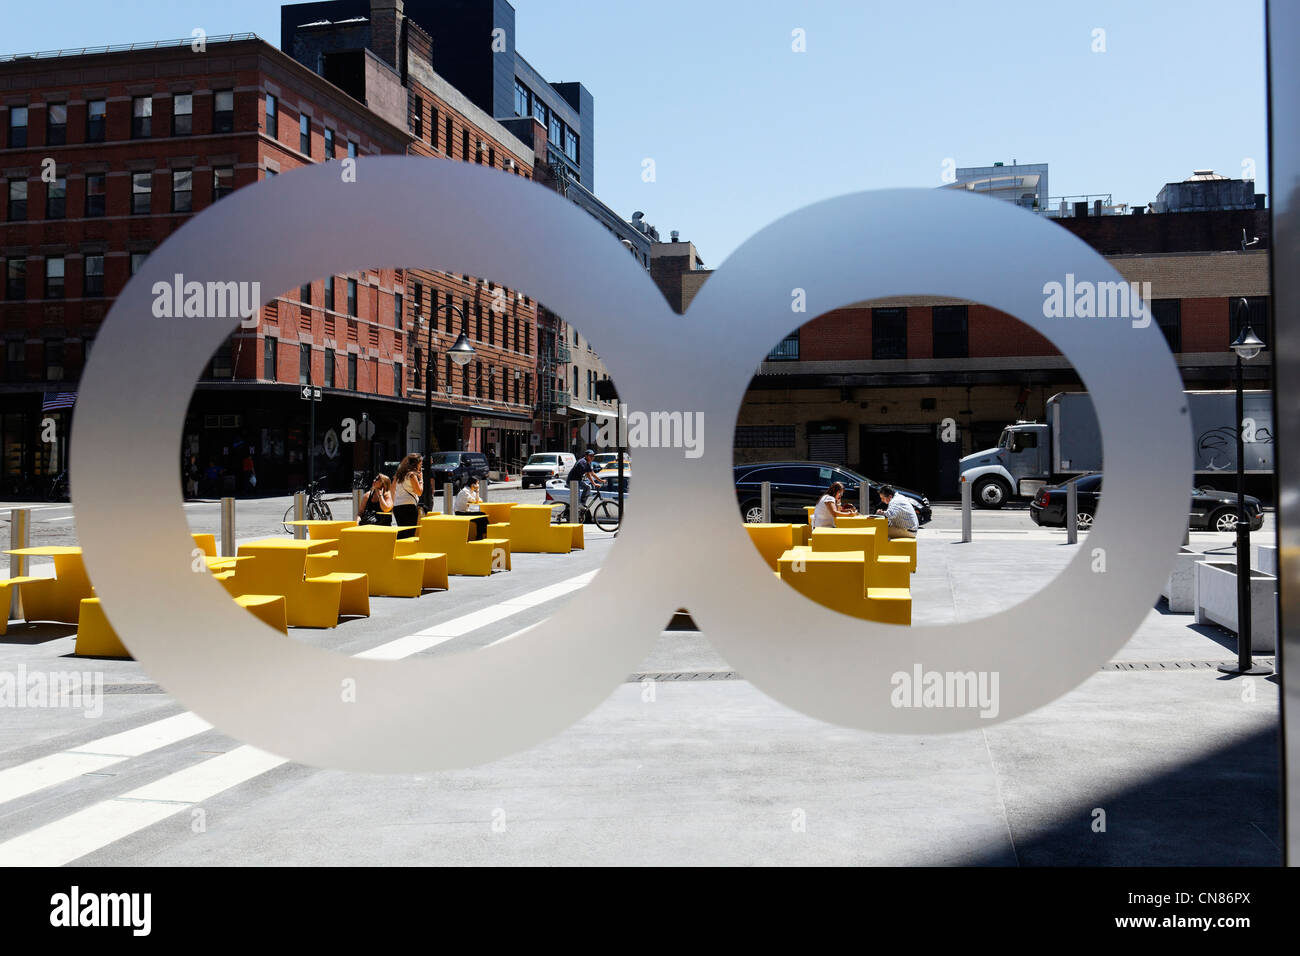 United States, New York City, Manhattan, Meatpacking District, logo on door and outside terrace, Standard Hotel, - Stock Image